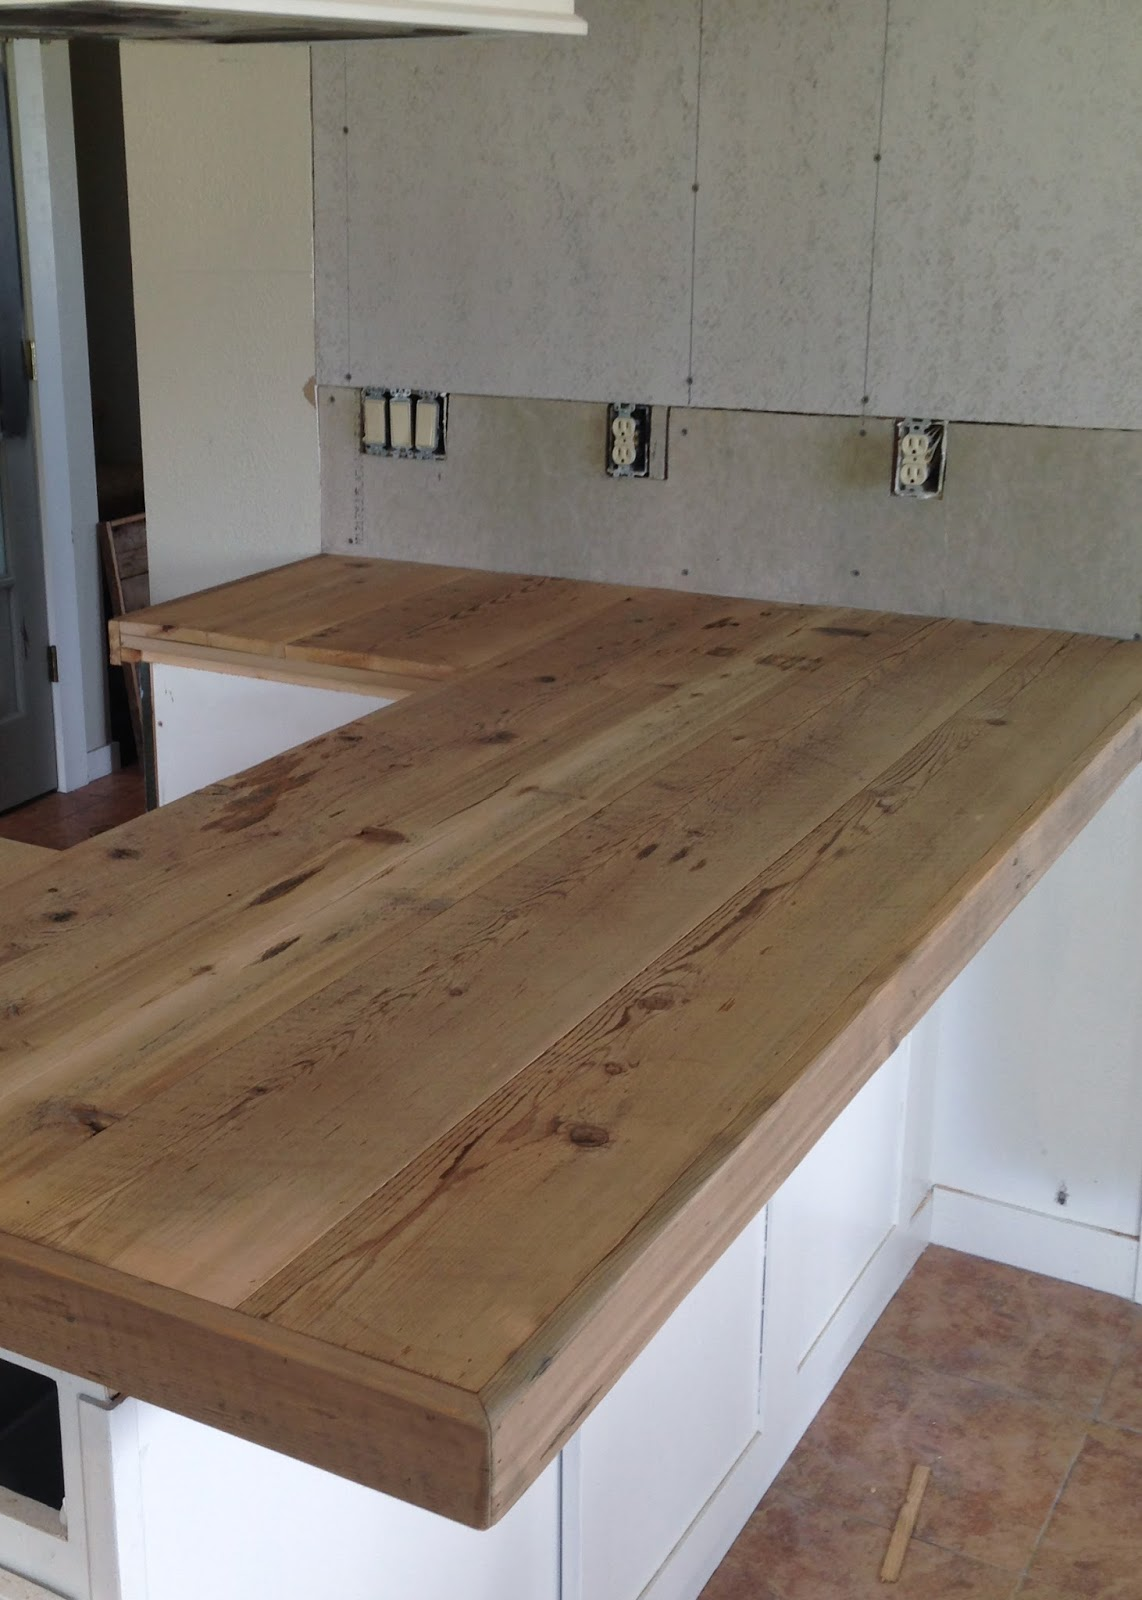 How To Waterproof Wood Countertop Diy Reclaimed Wood Countertop Averie Lane Diy Reclaimed Wood